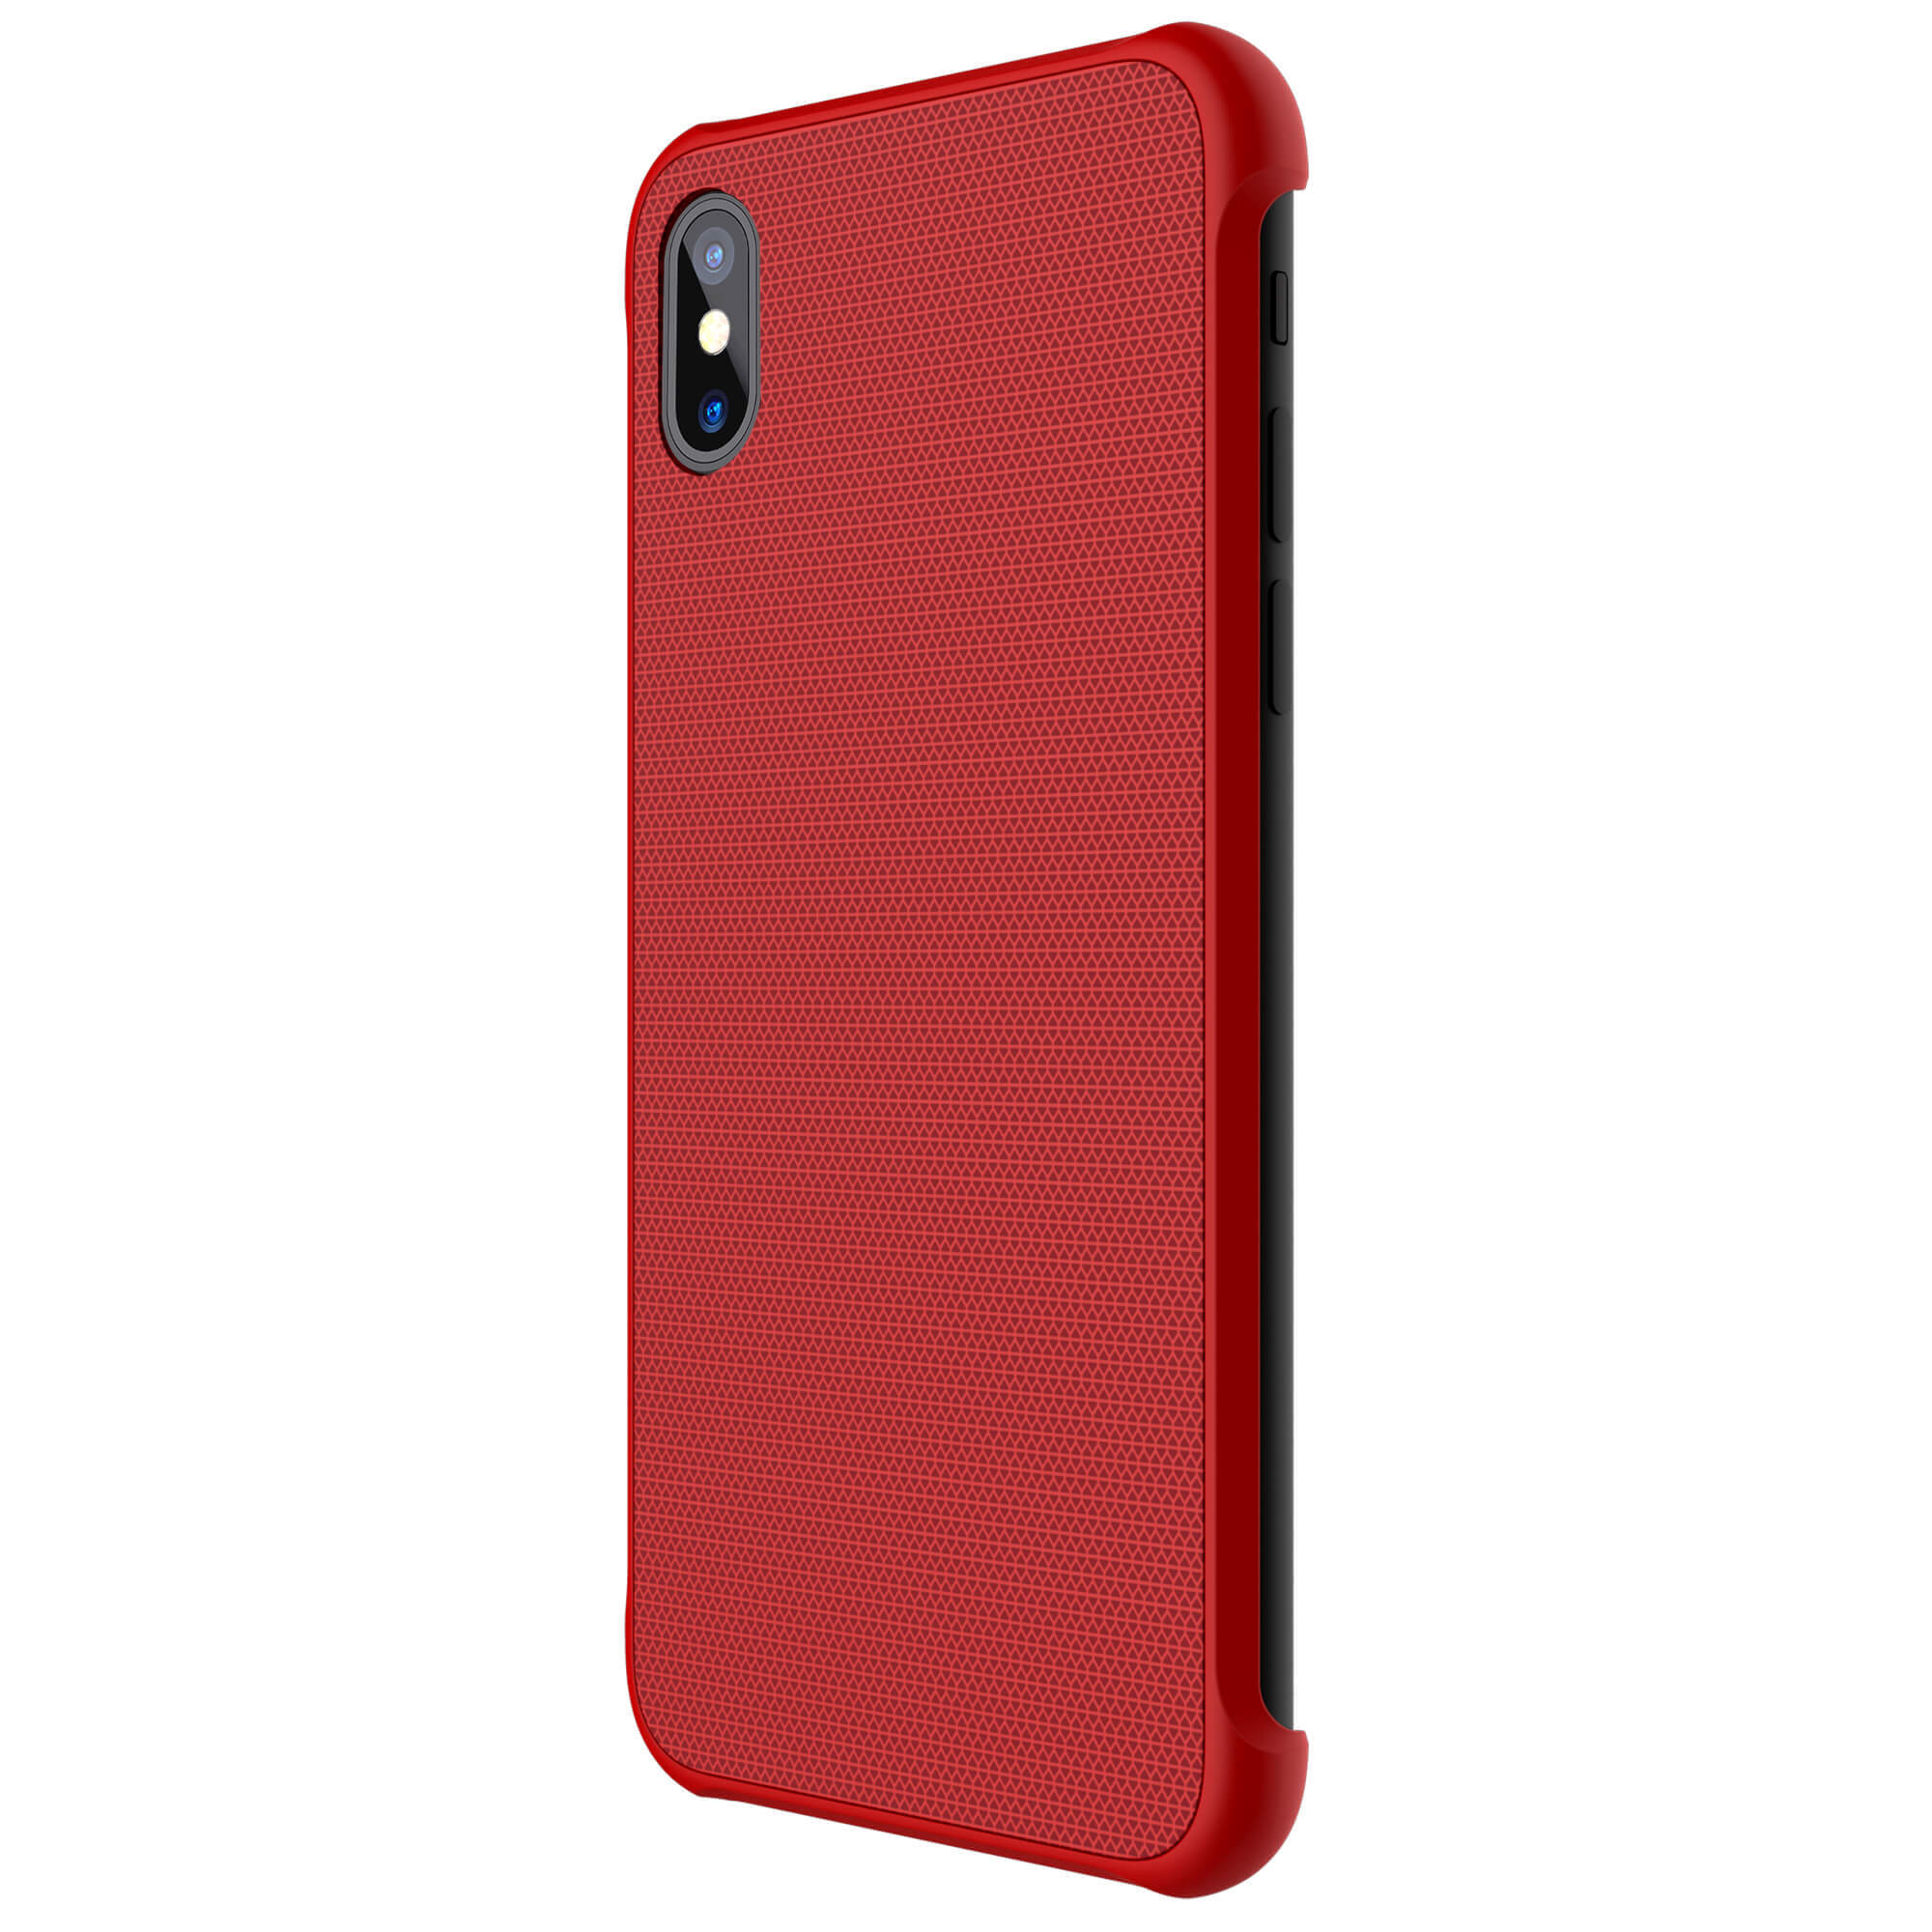 Чехлы Чехол Nillkin Tempered Magnet для iPhone X 1__6_.jpg